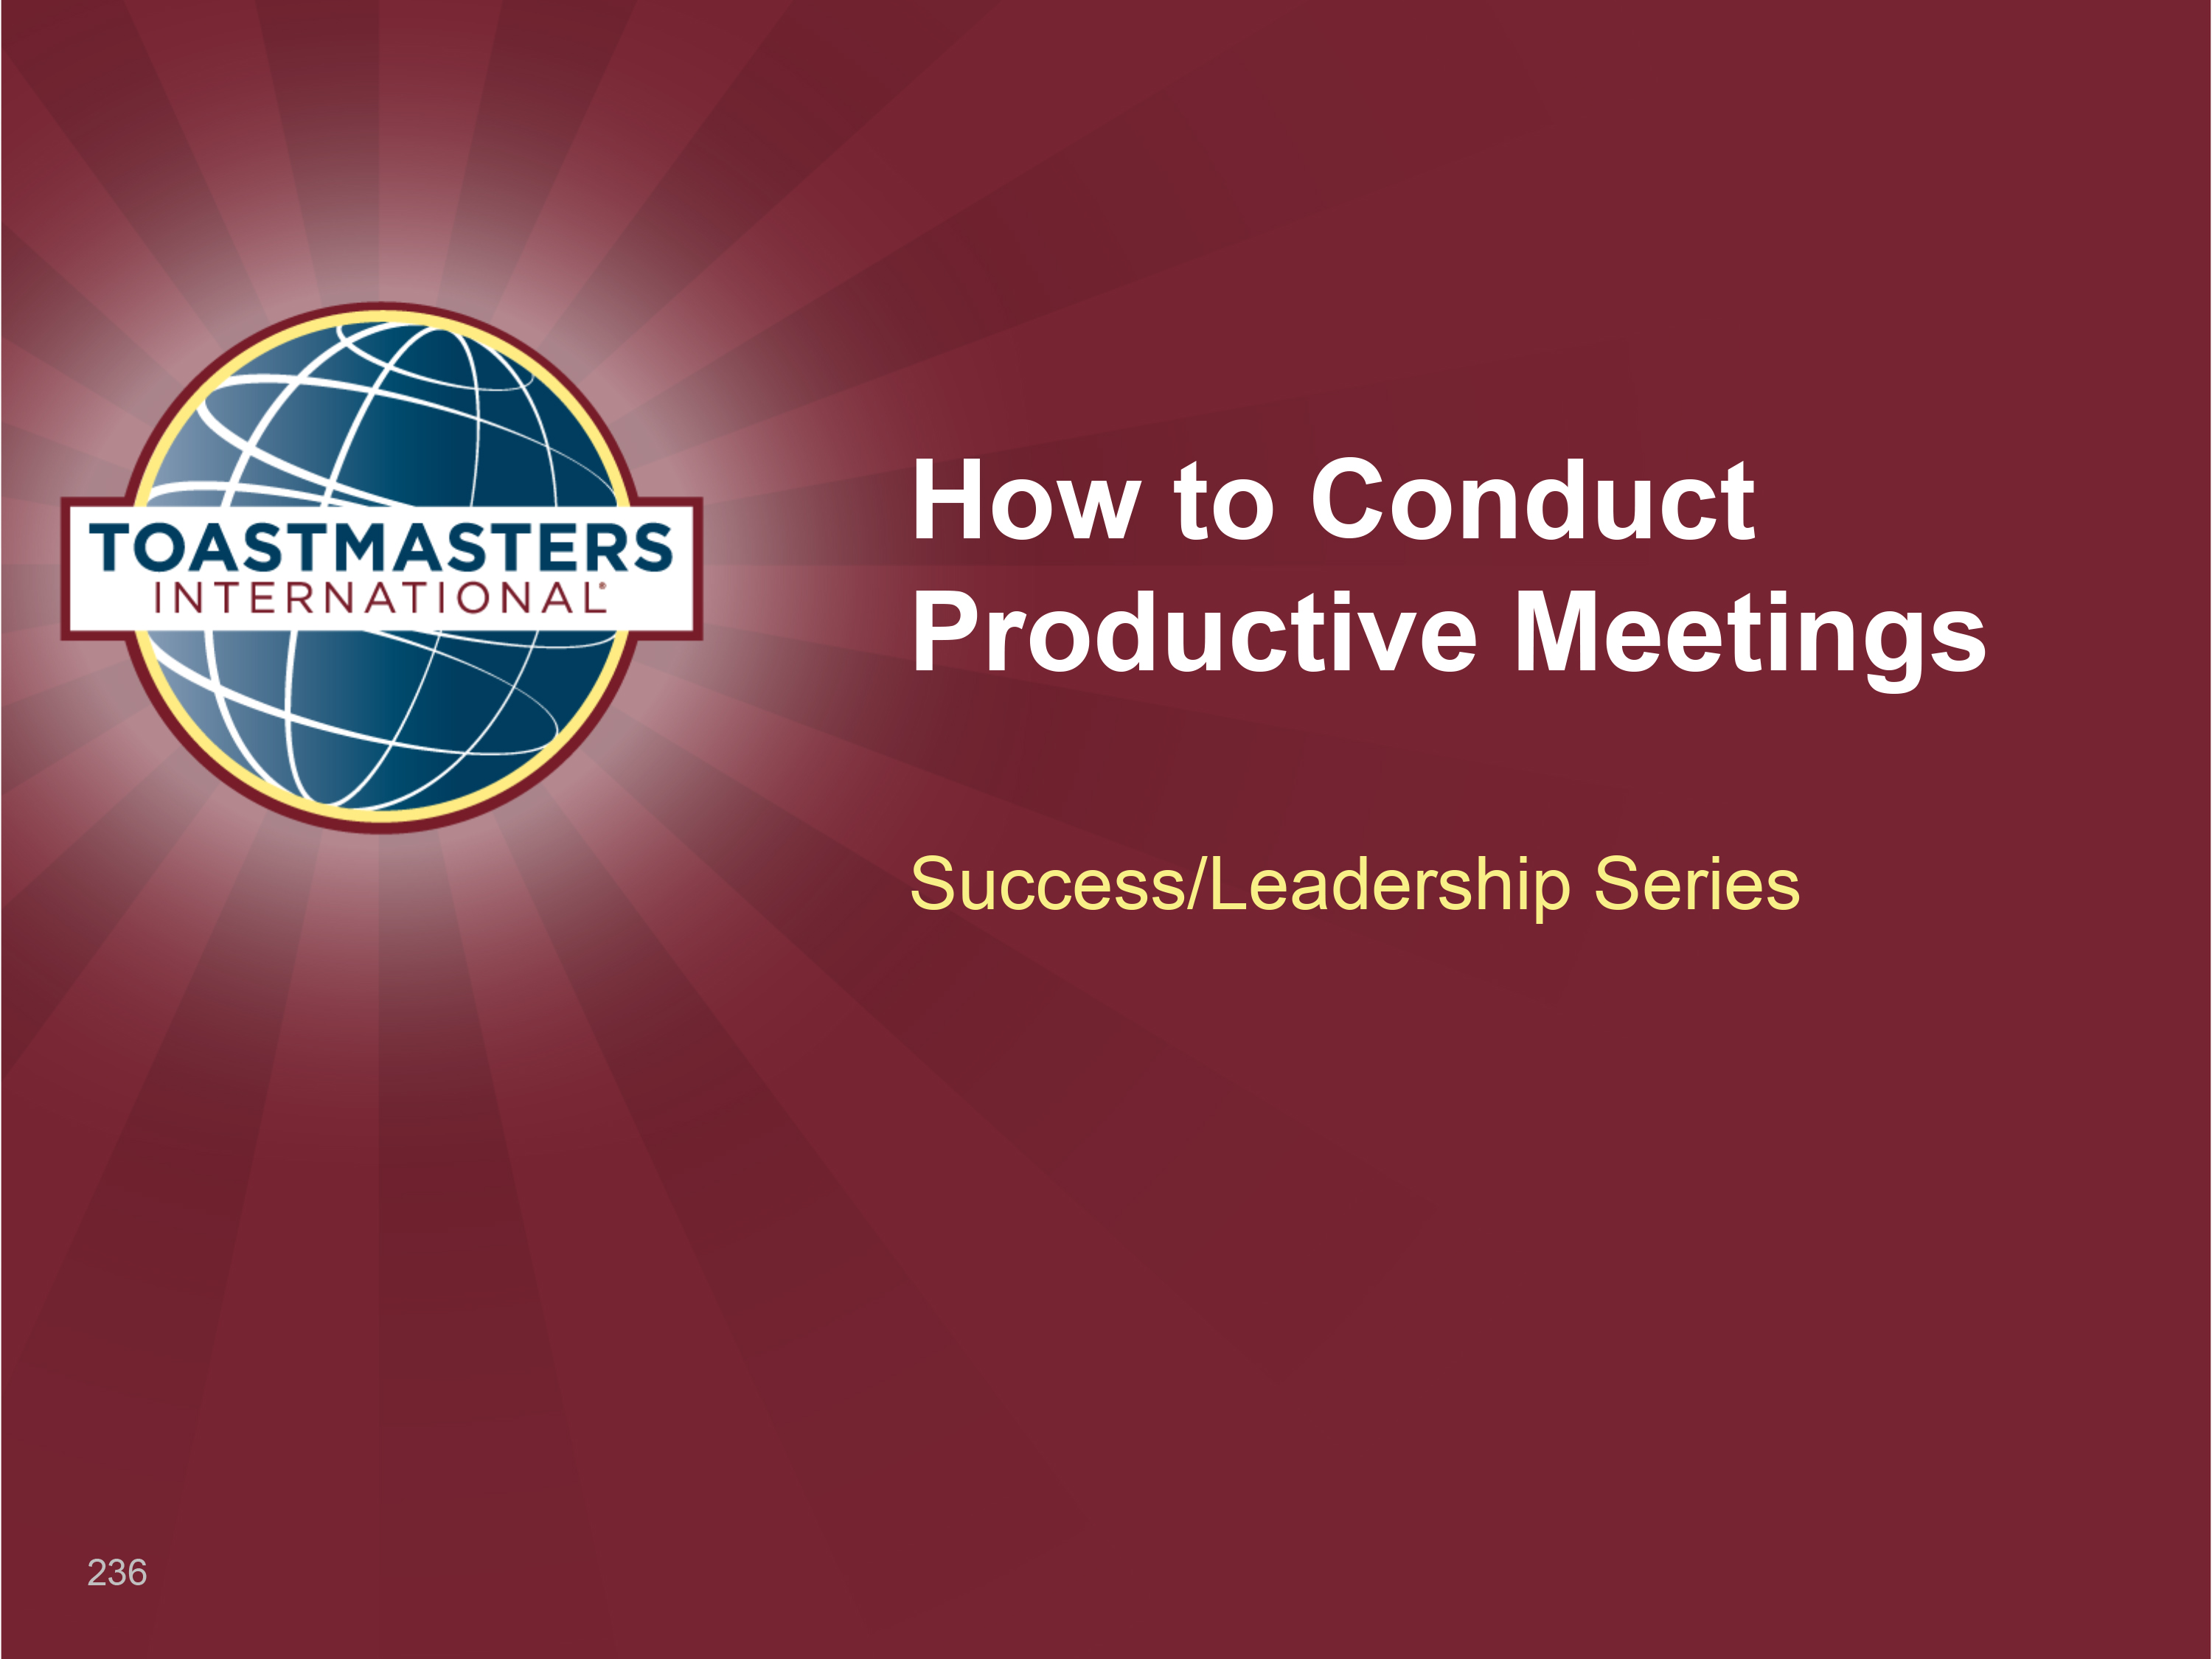 How to Conduct Productive Meetings Workshop (PPT)